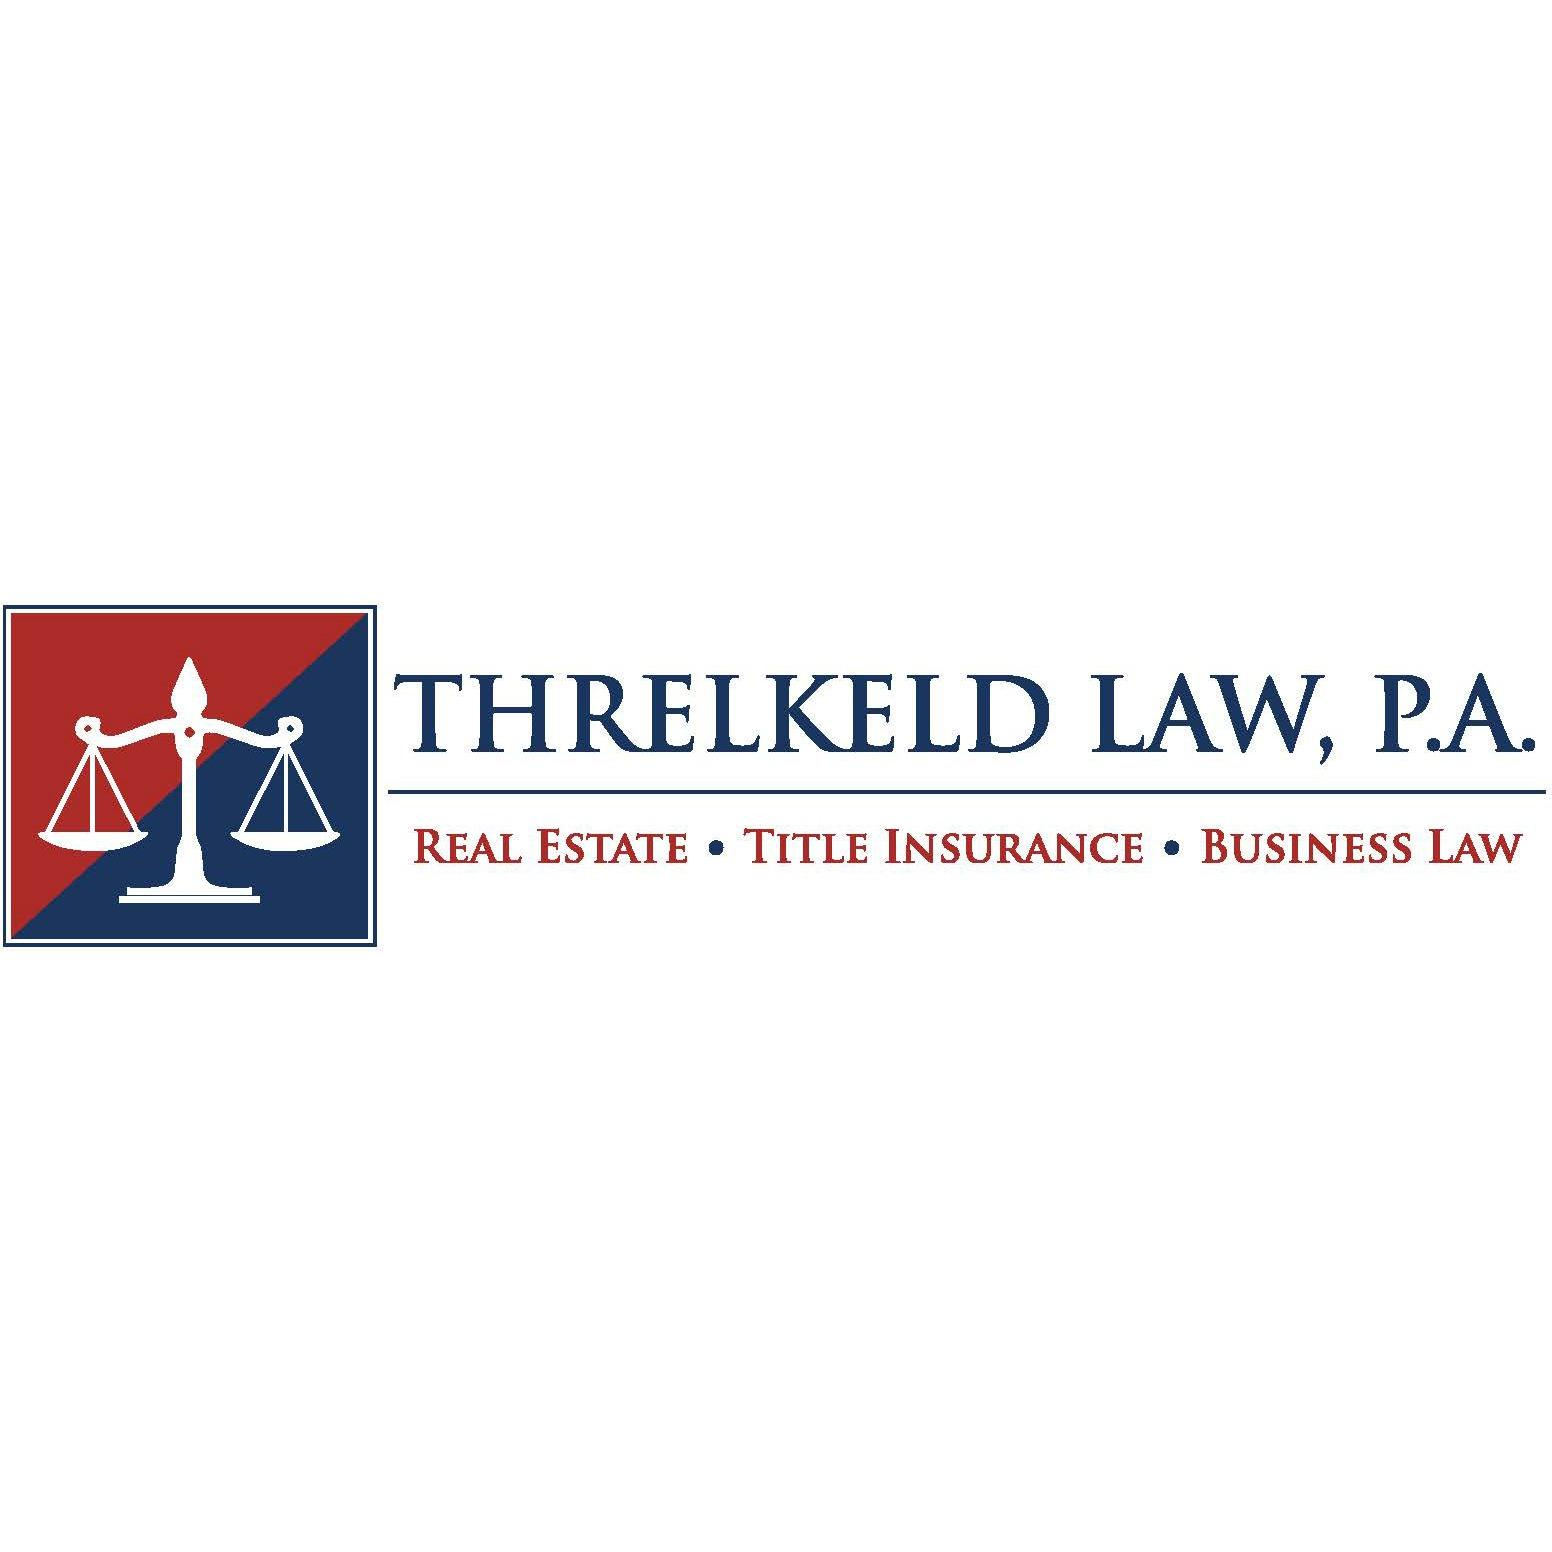 THRELKELD LAW, P.A. image 1